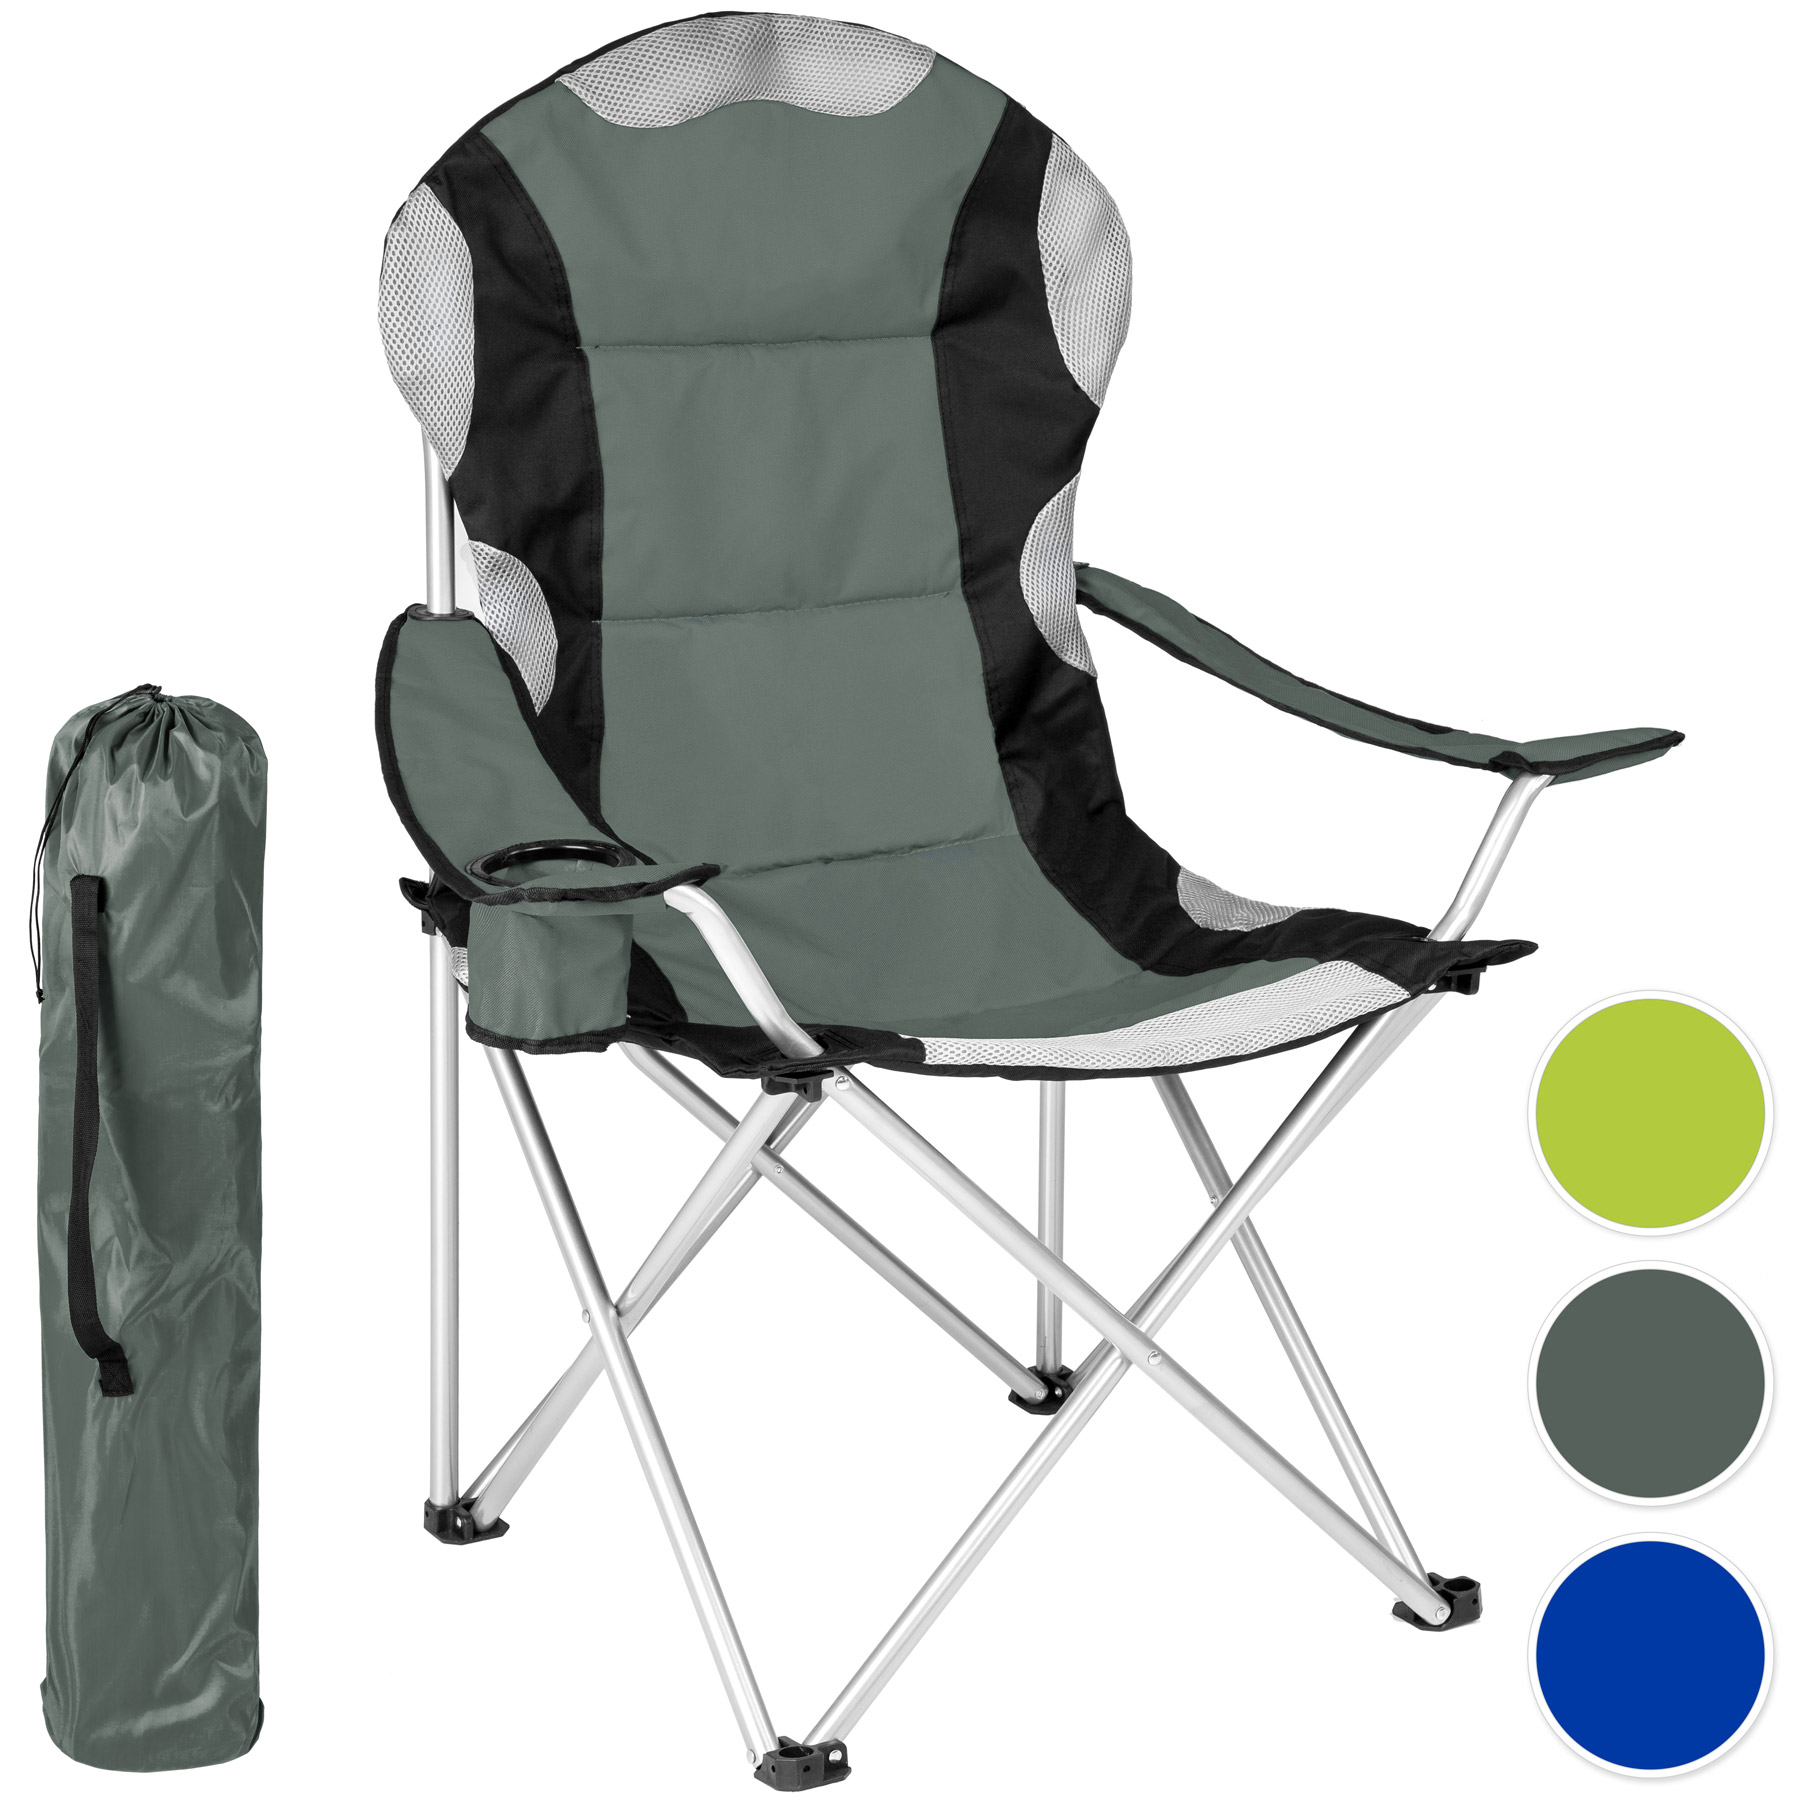 chaise de camping pliante avec housse fauteuil de camping pliable siege de plage. Black Bedroom Furniture Sets. Home Design Ideas